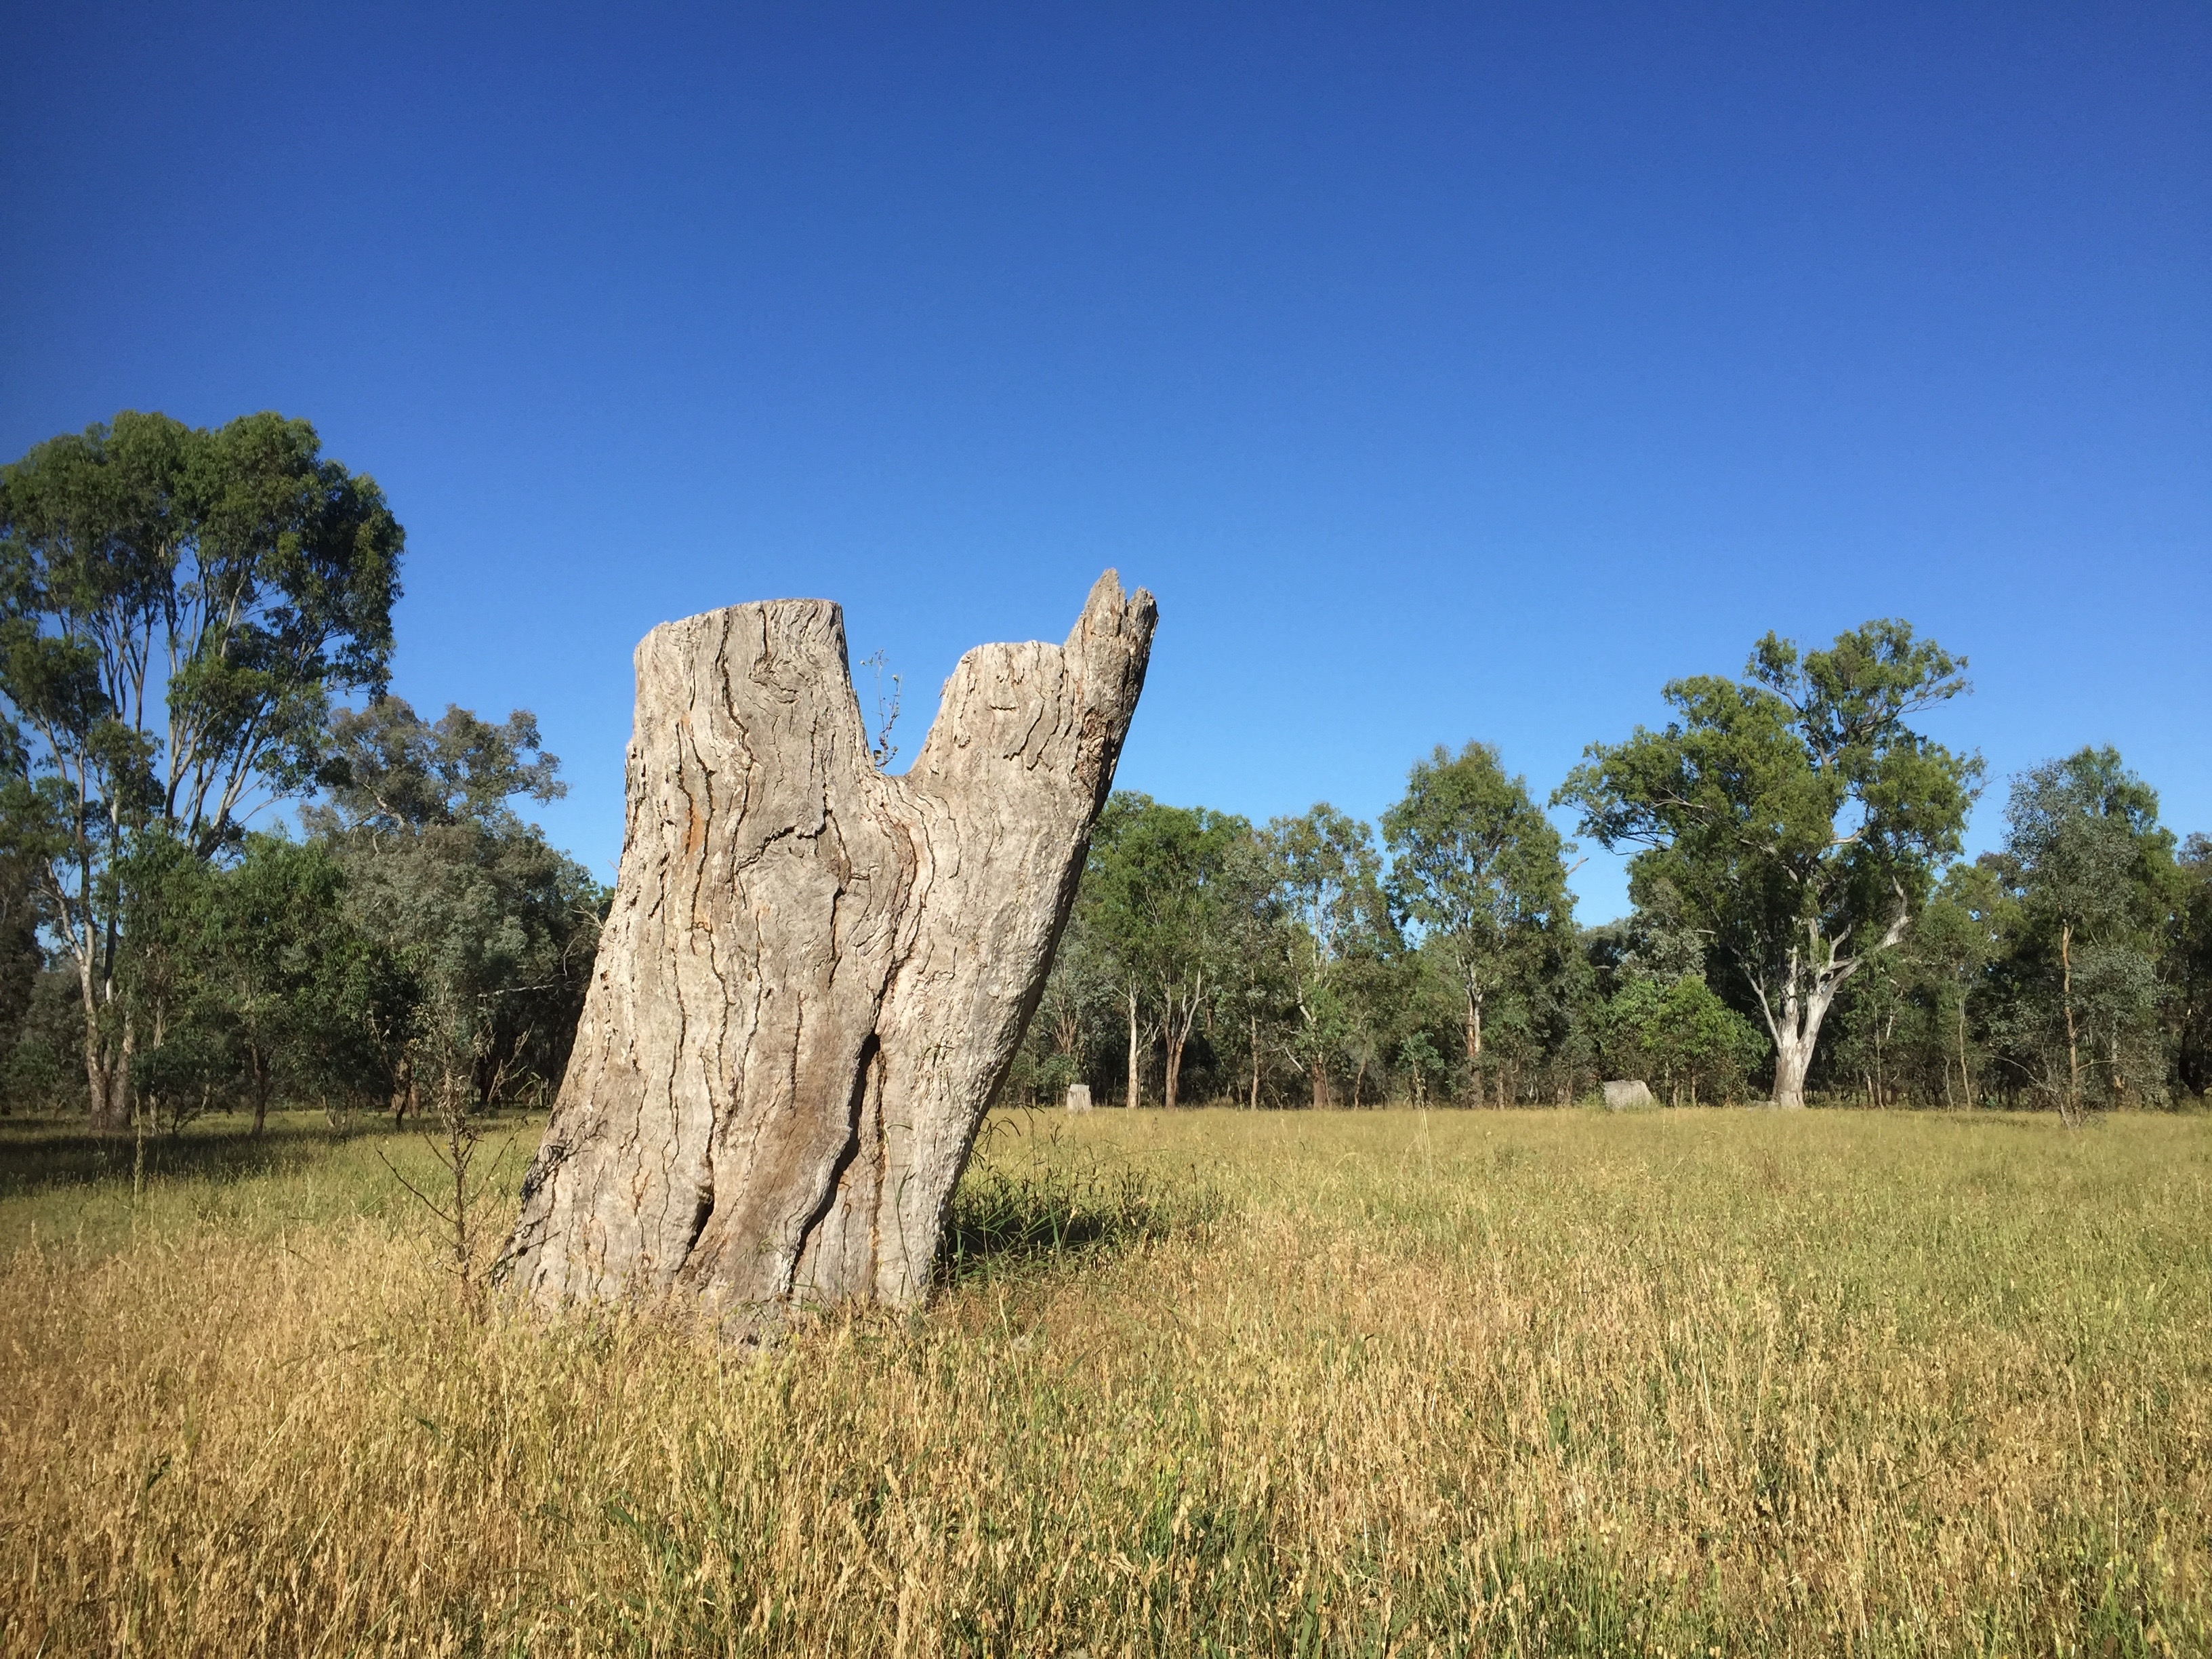 Removal of big trees affects hollow-dependent fauna, Thurgoona NSW